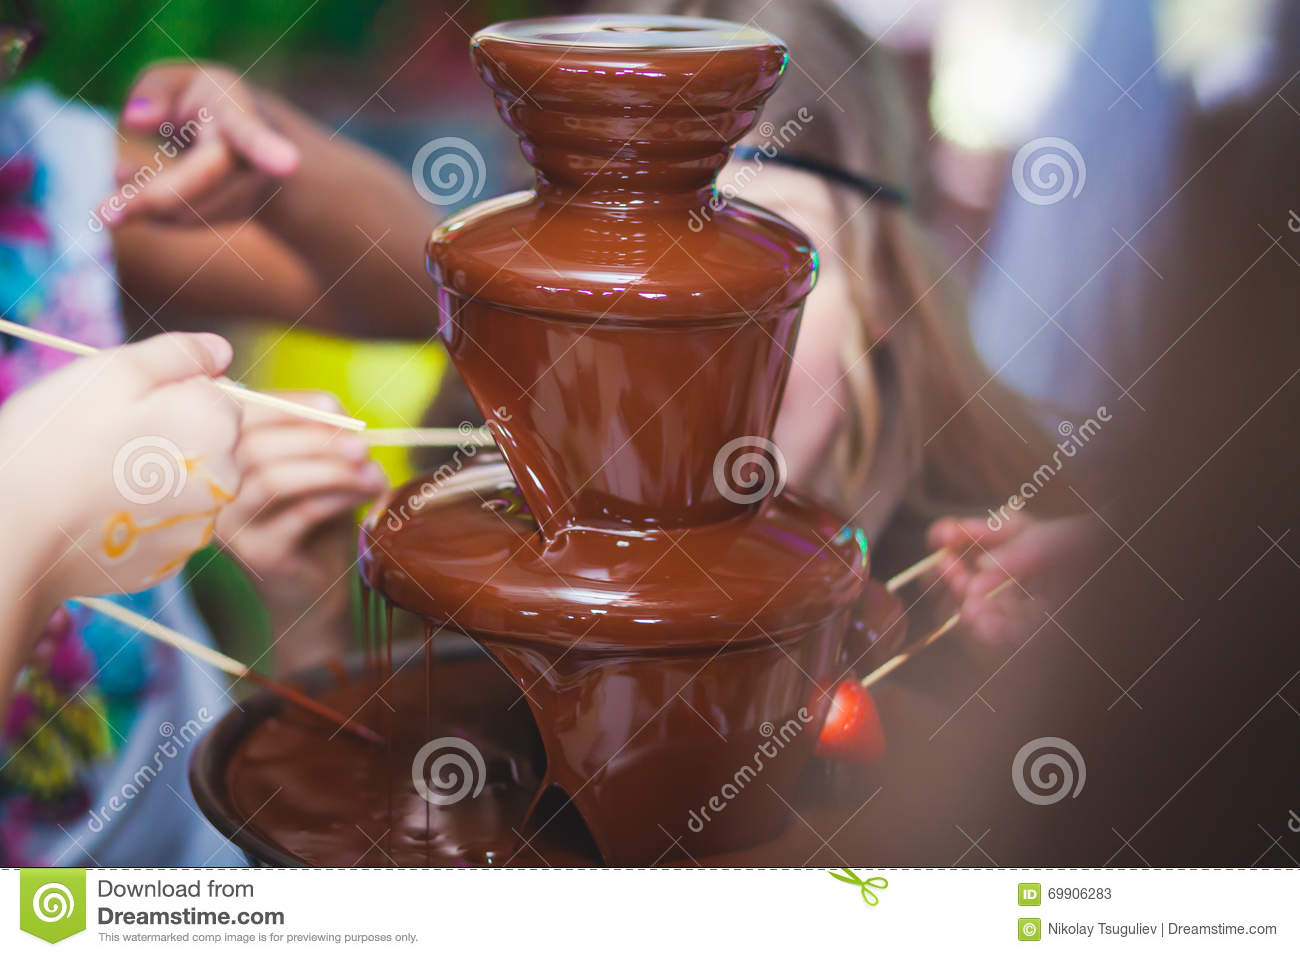 Vibrant Picture of Chocolate Fountain Fontain on childen kids birthday party with a kids playing around and marshmallows and fruit